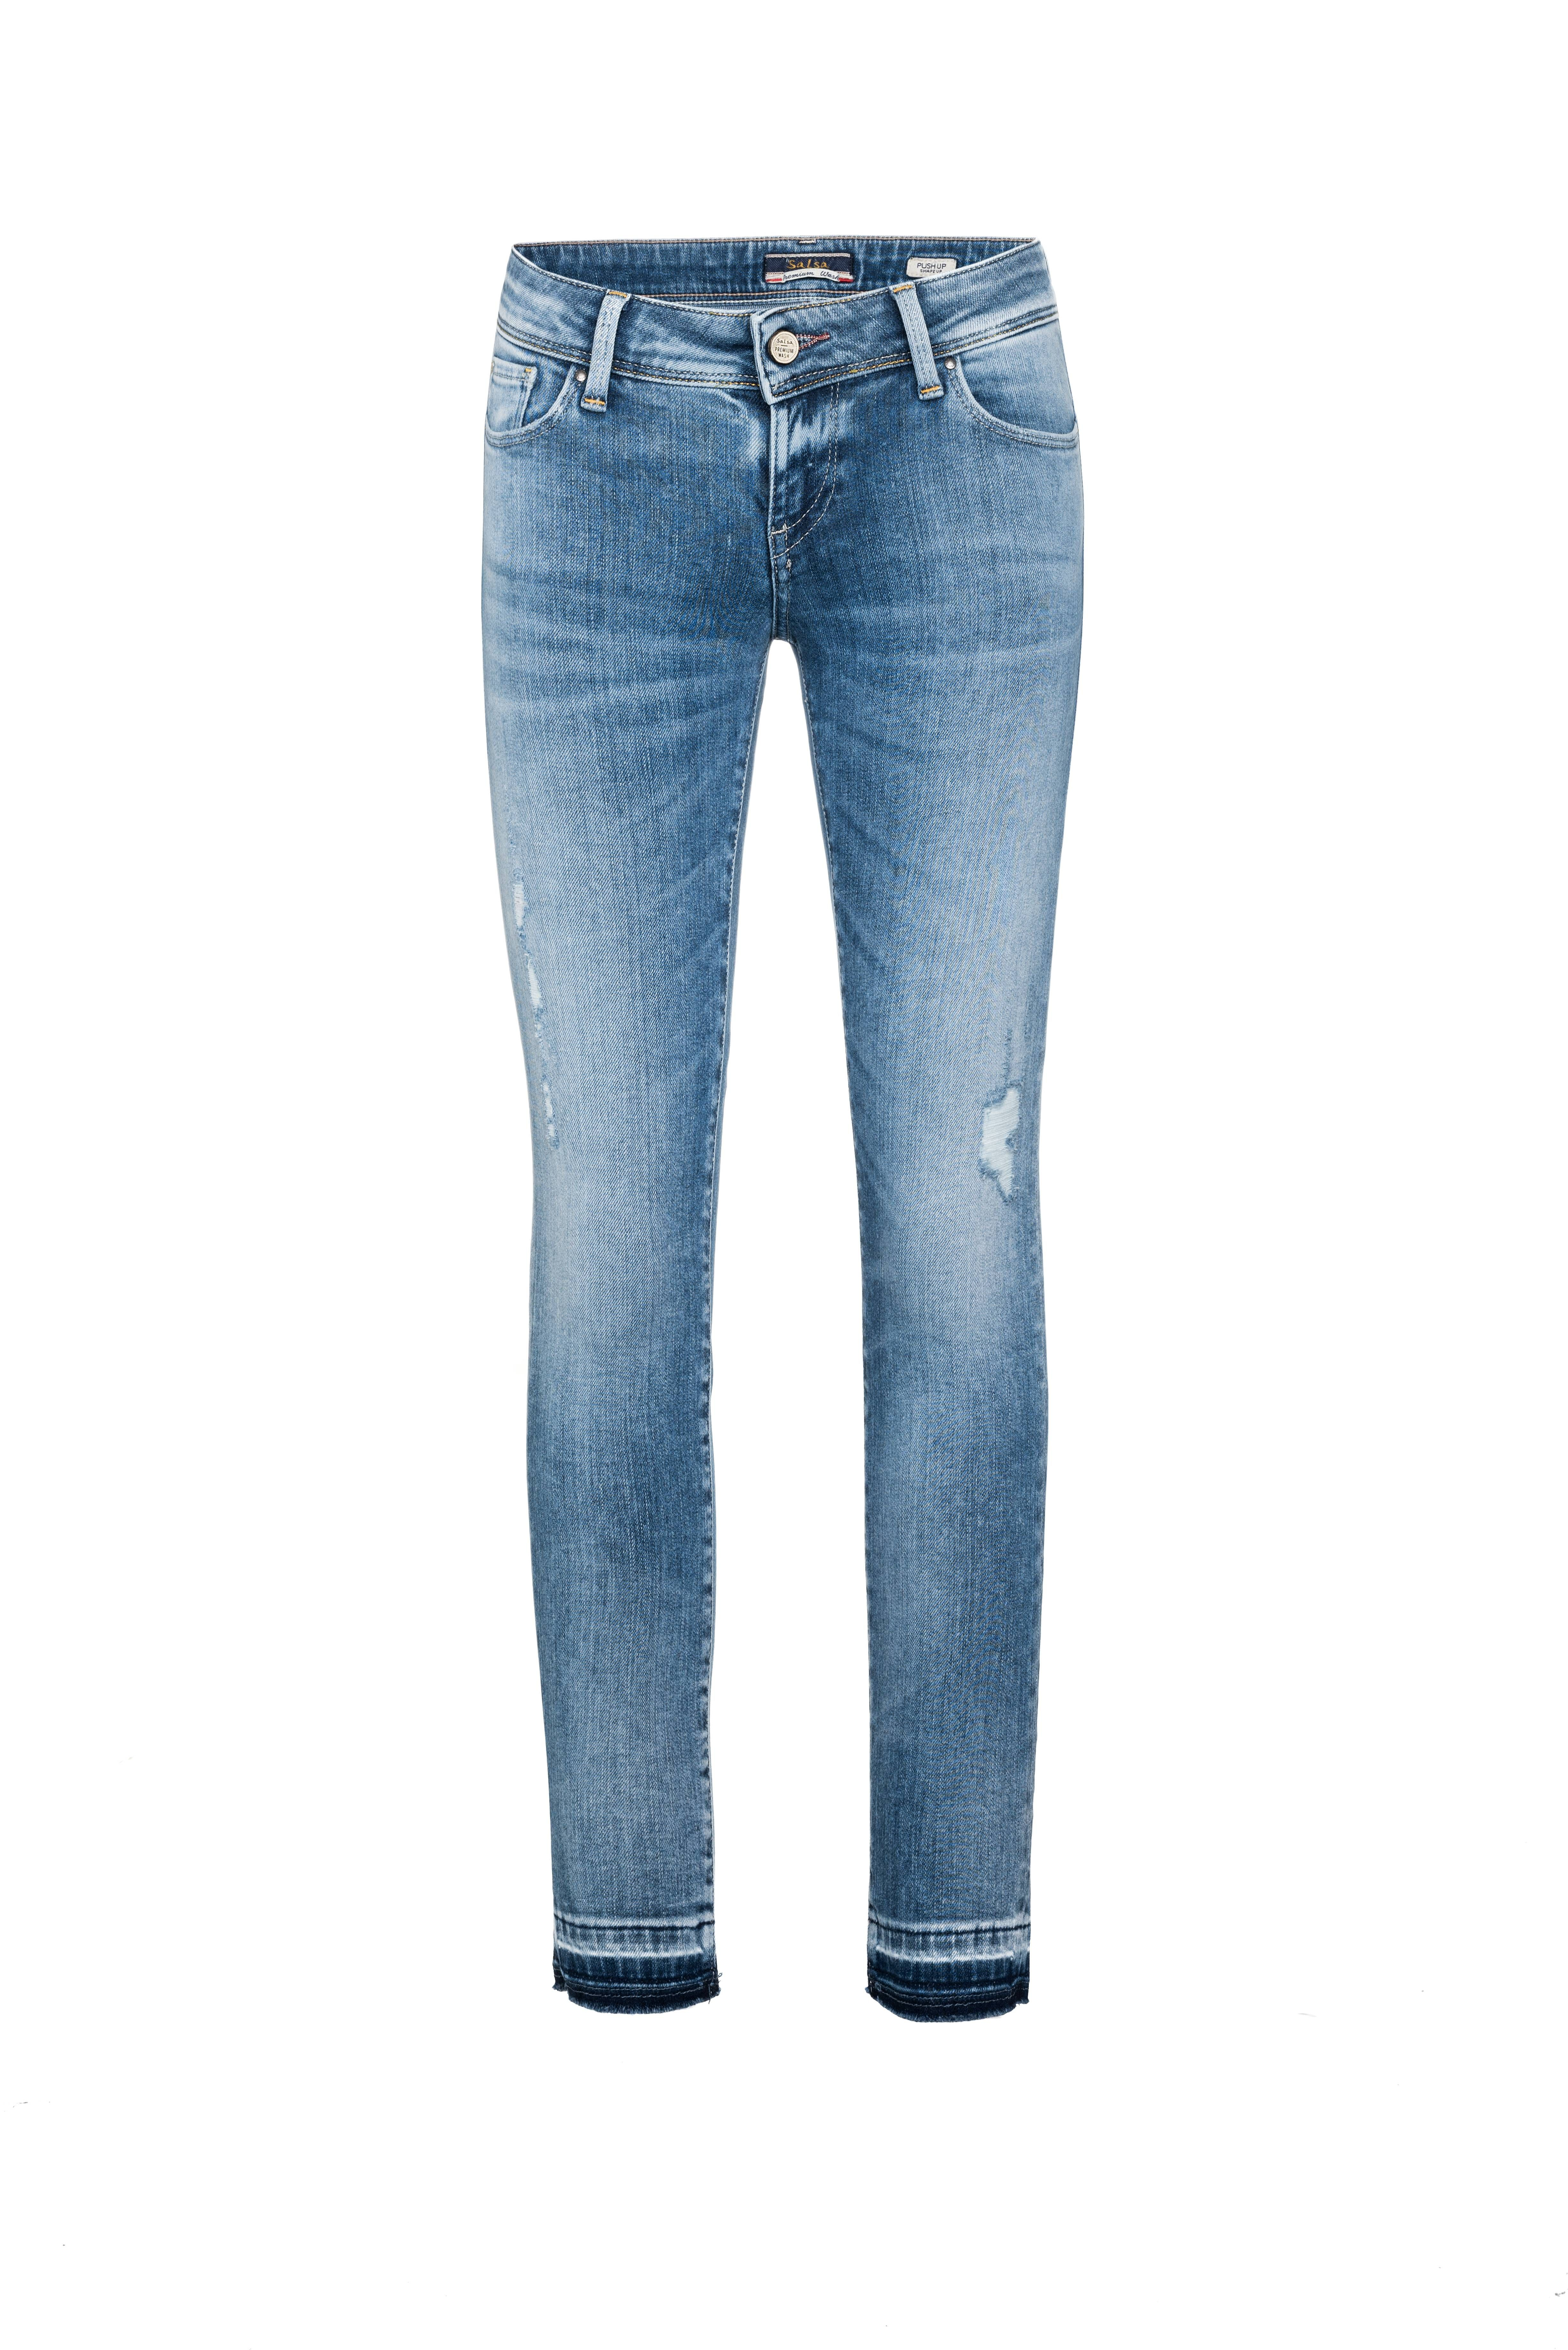 aa431d95 Vaqueros Shape up Capri premium wash - Salsa | w denim in 2019 ...